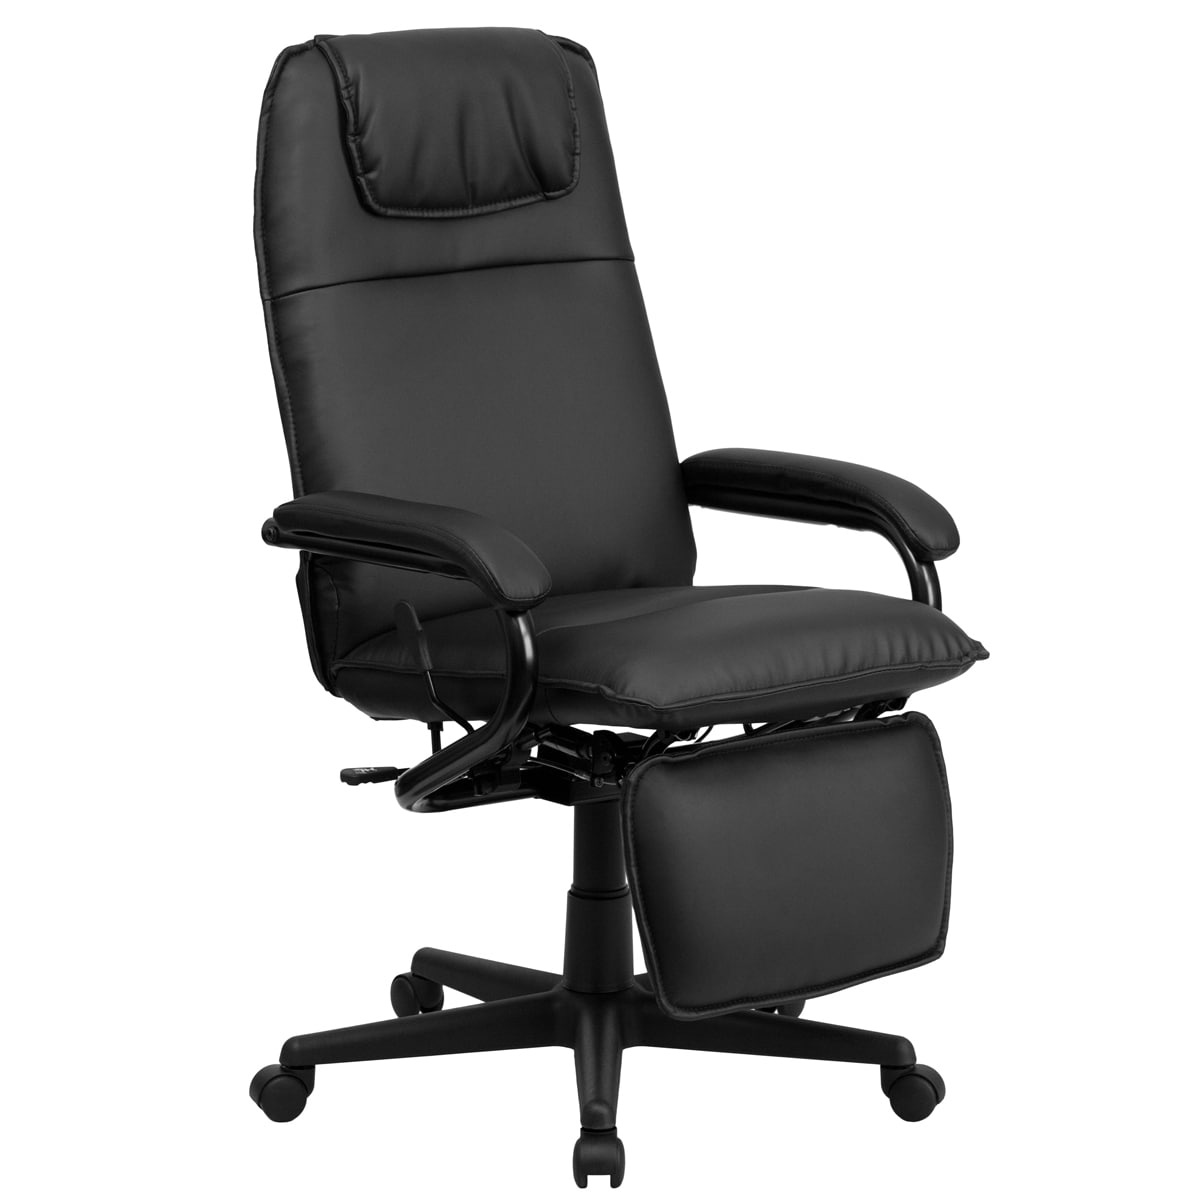 Offex High Back Leather Executive Reclining Office Chair   Free Shipping  Today   Overstock.com   16915539